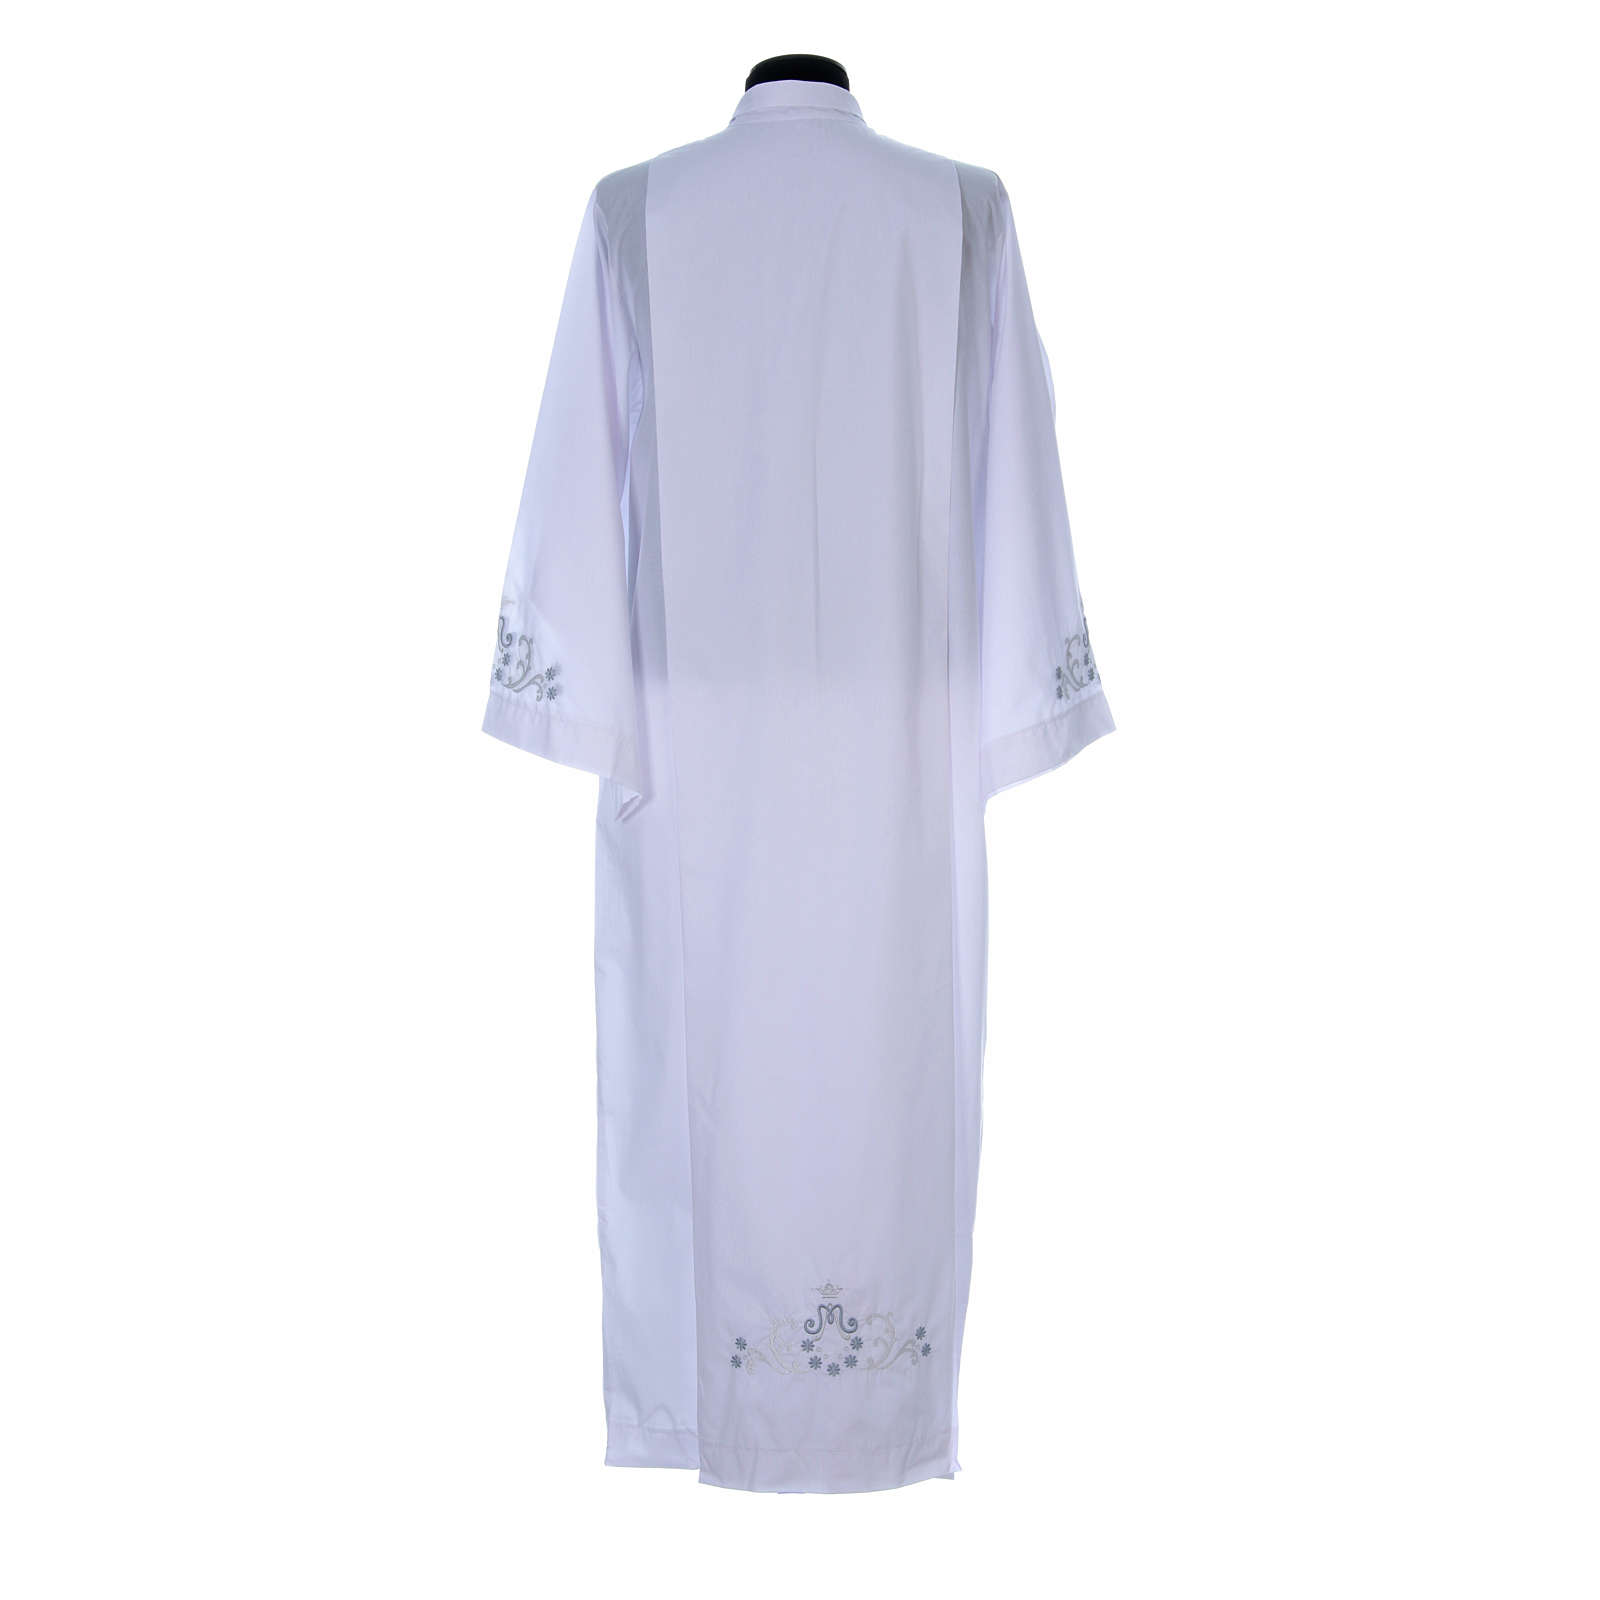 White alb with Marian embroidery on back and front in cotton mix 4